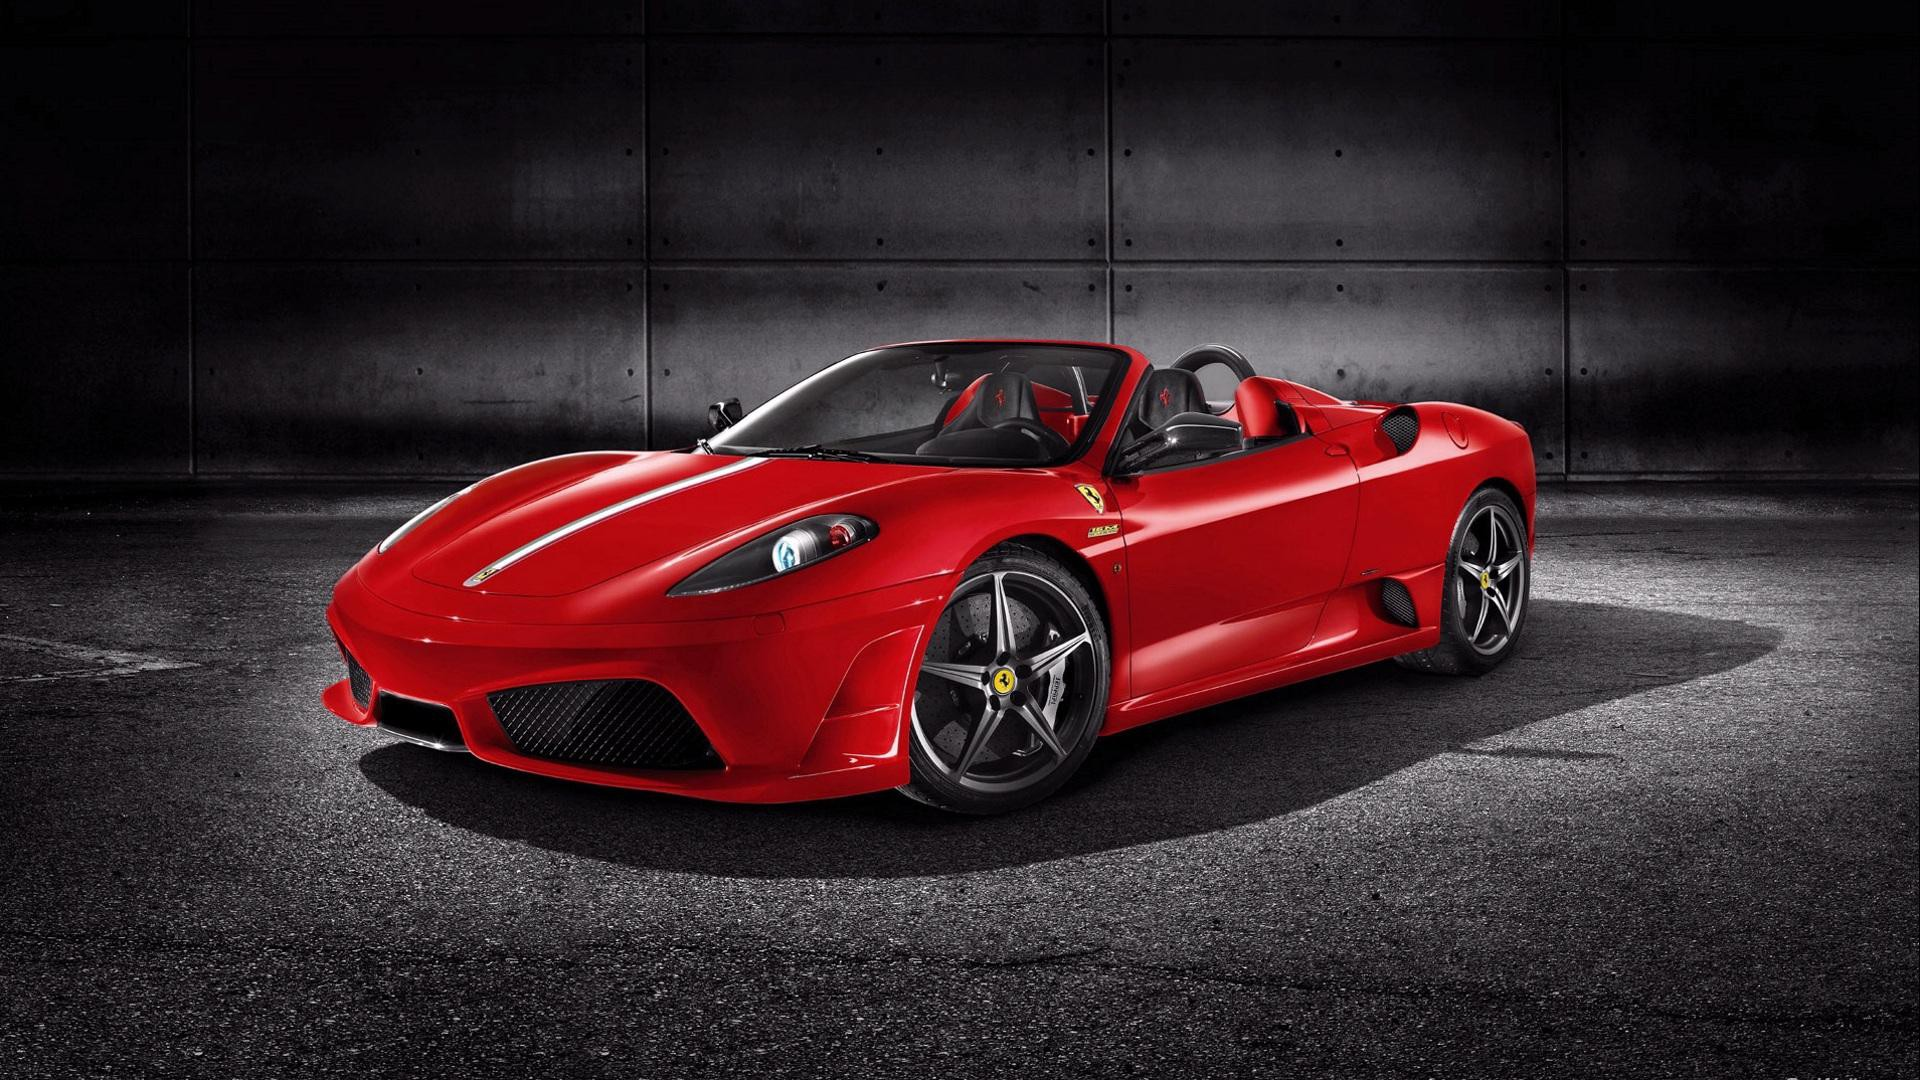 Amazing Full Hd Ferrari F430 Scuderia Spider Wallpaper